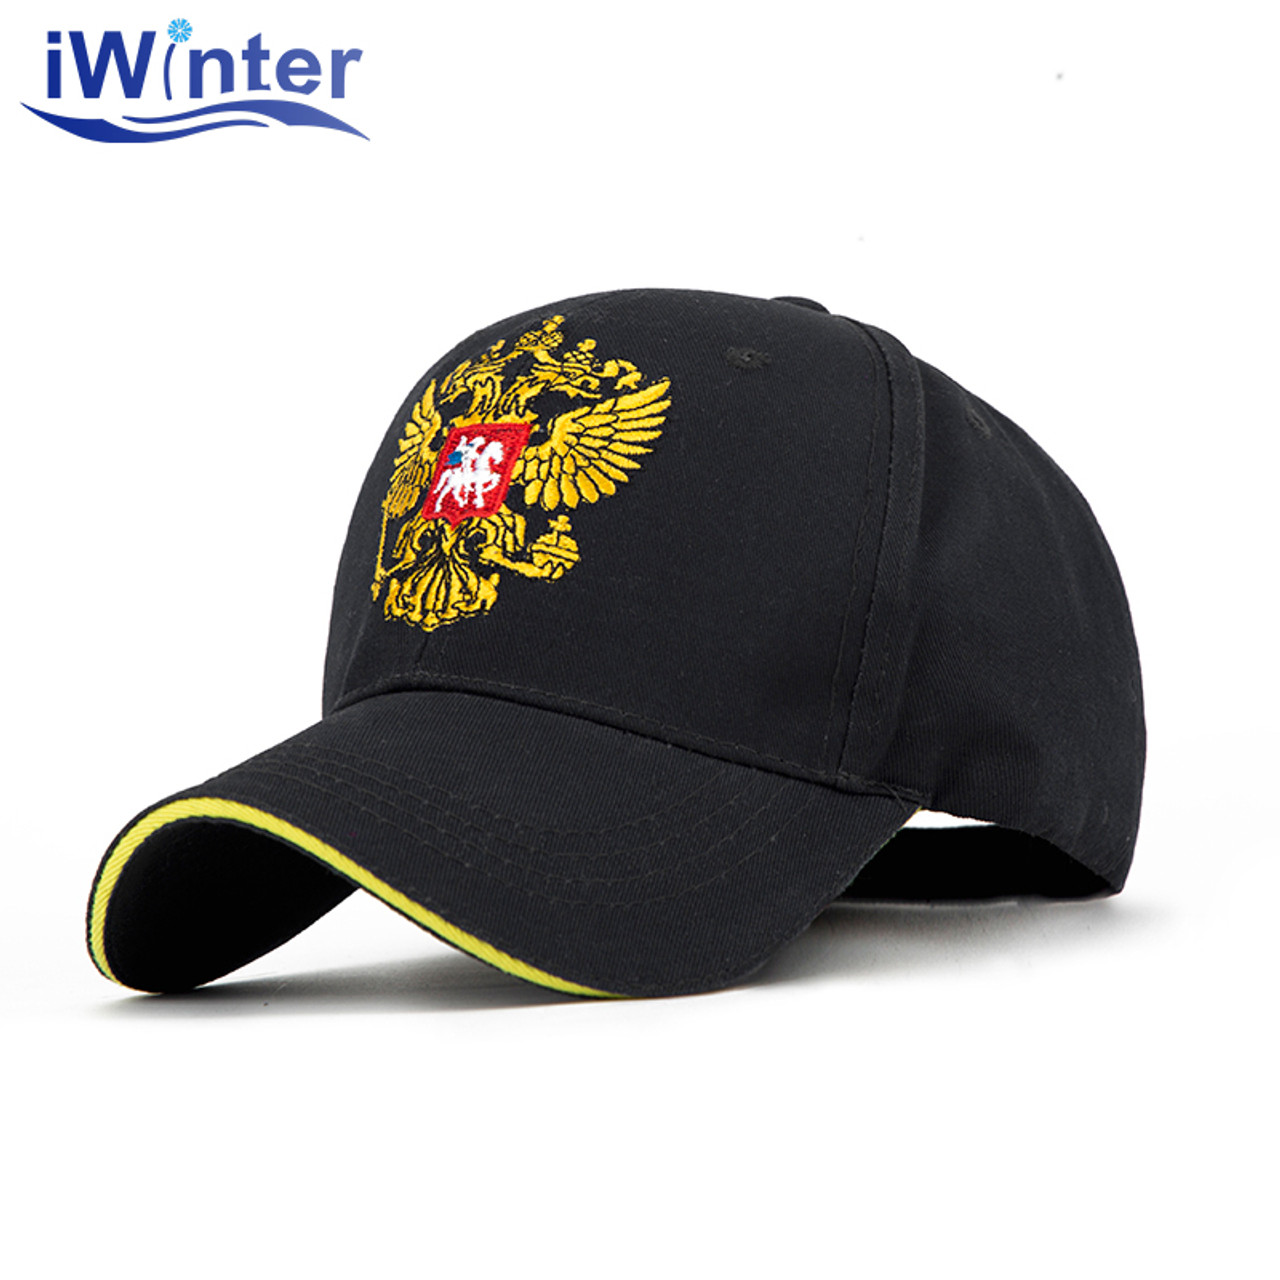 d484b07e3 IWINTER 2018 Unisex Cotton Baseball Cap For Men Women Snapback Caps Women  Embroidery Outdoor Sport Hats Patriot Cap Wholesale